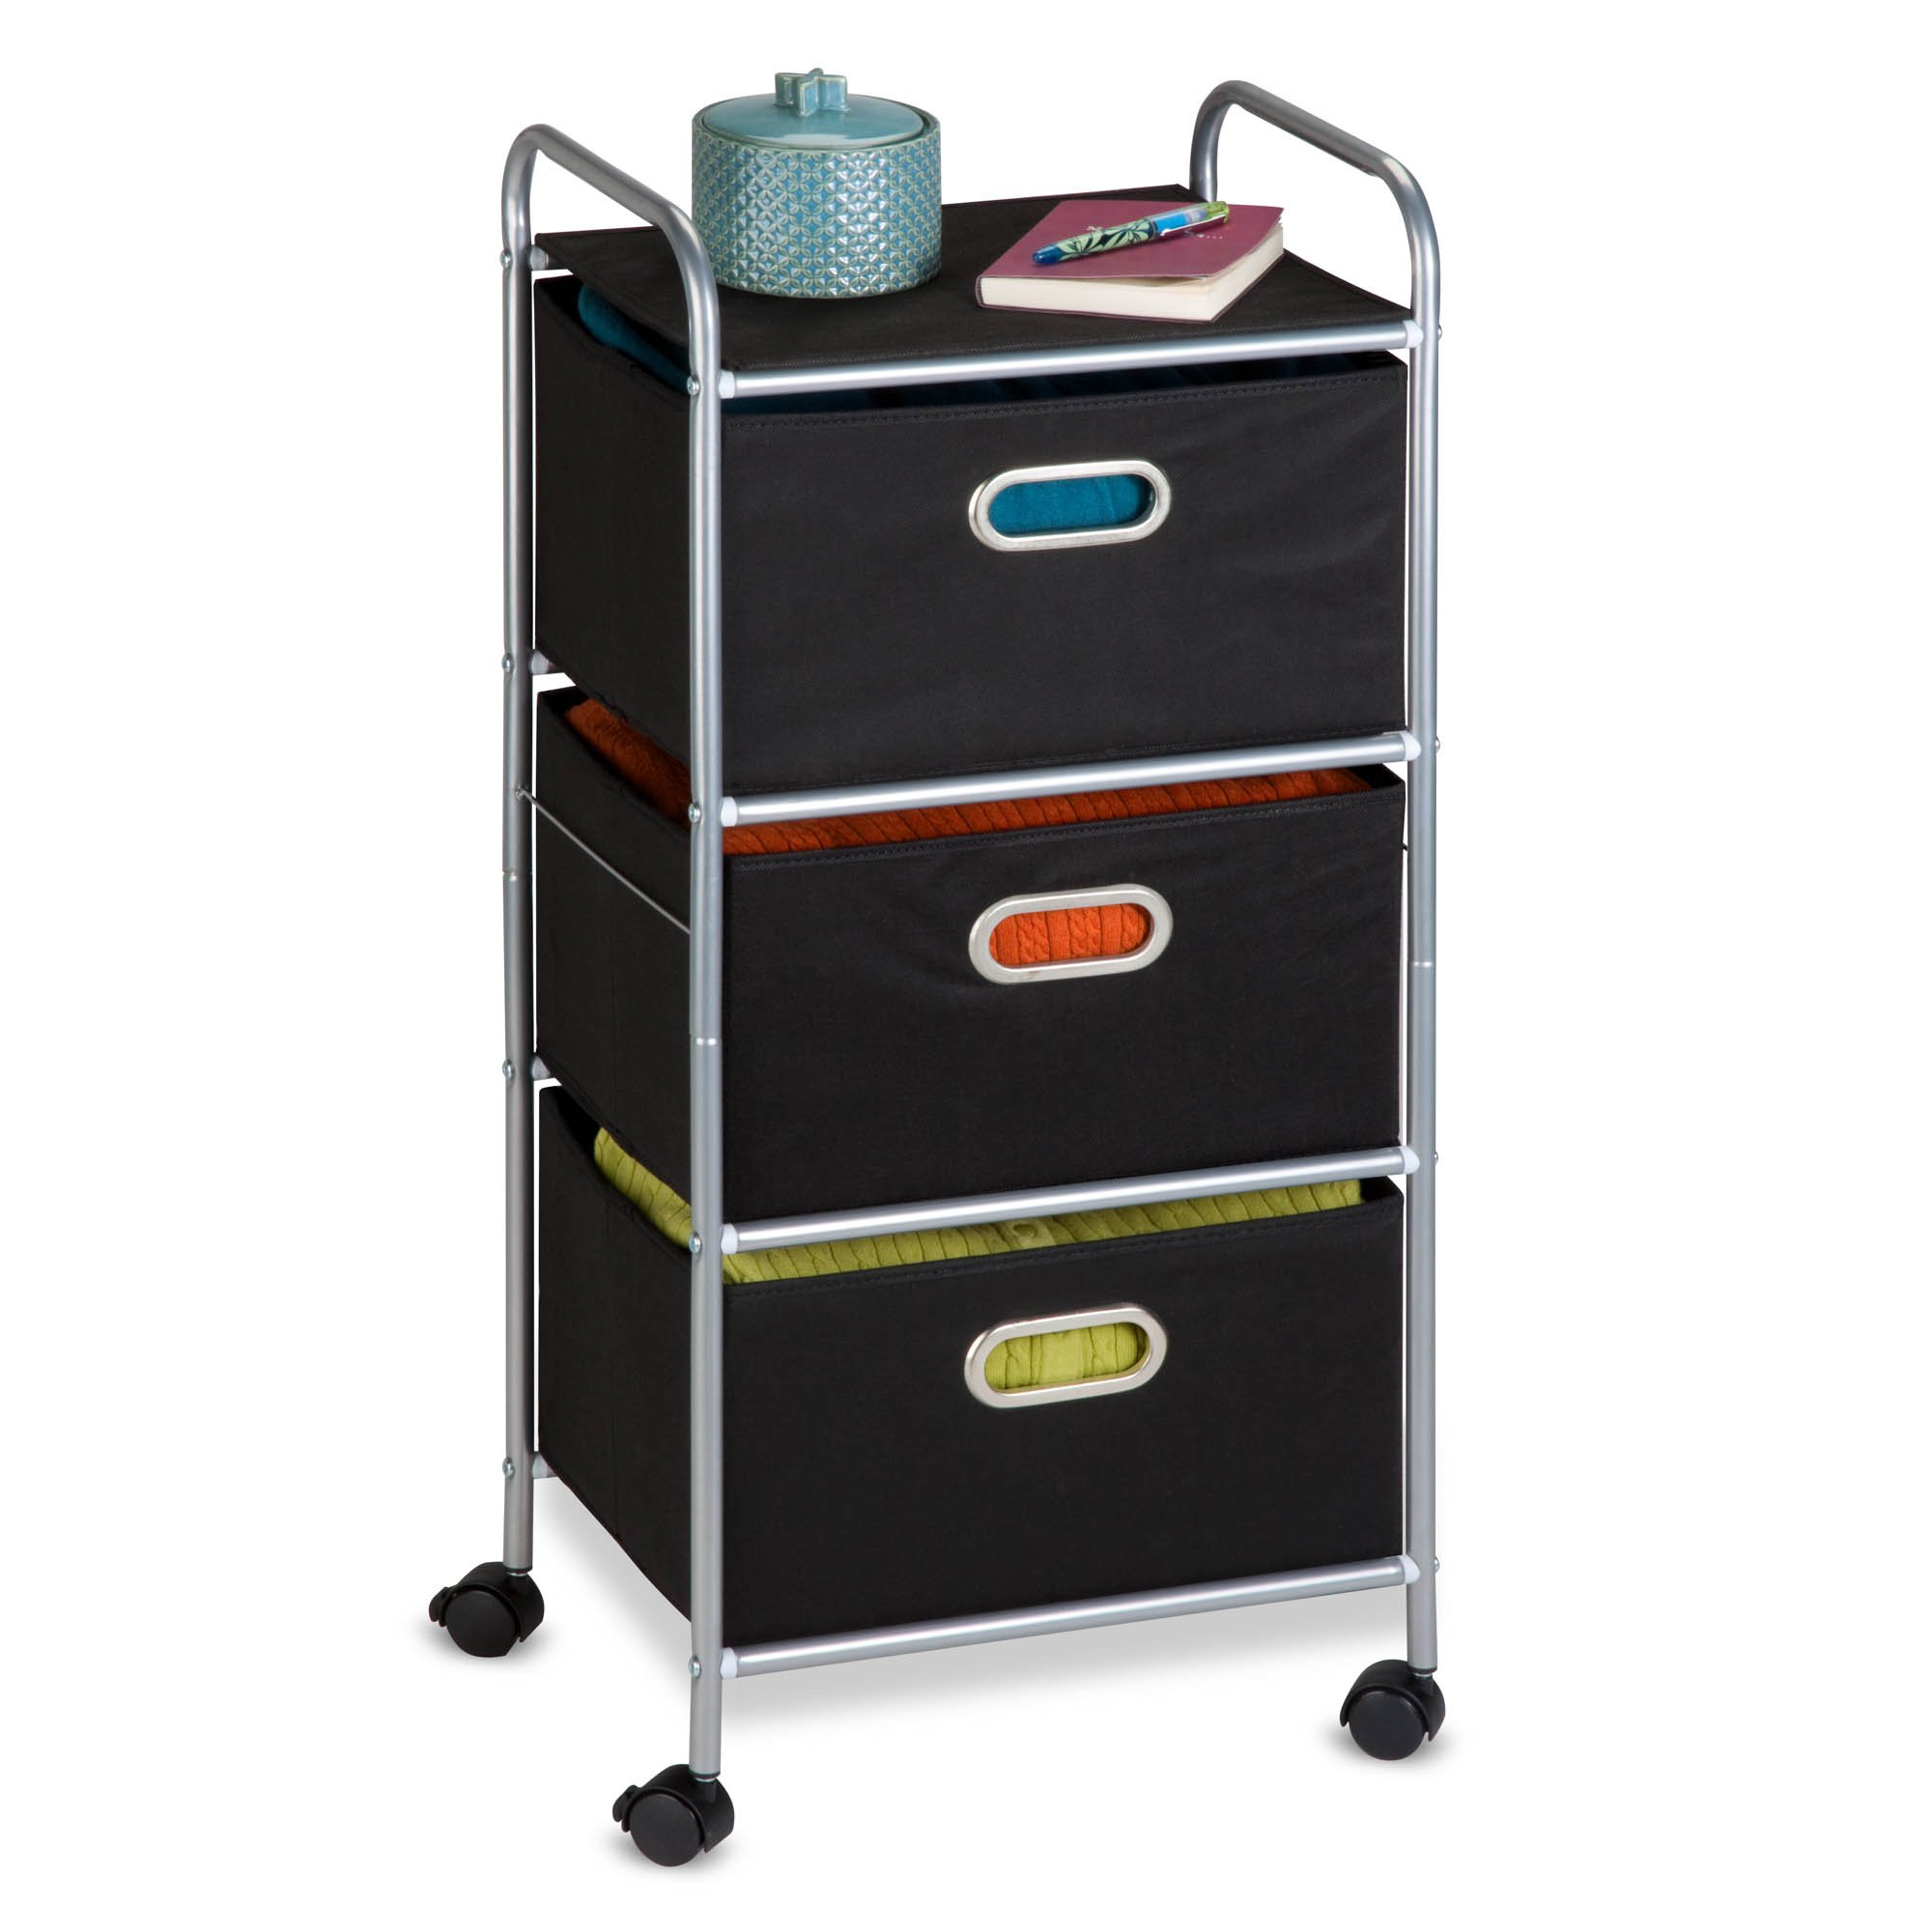 Honey-Can-Do CRT-02184 Rolling Storage Cart, Black/Chrome by Honey-Can-Do